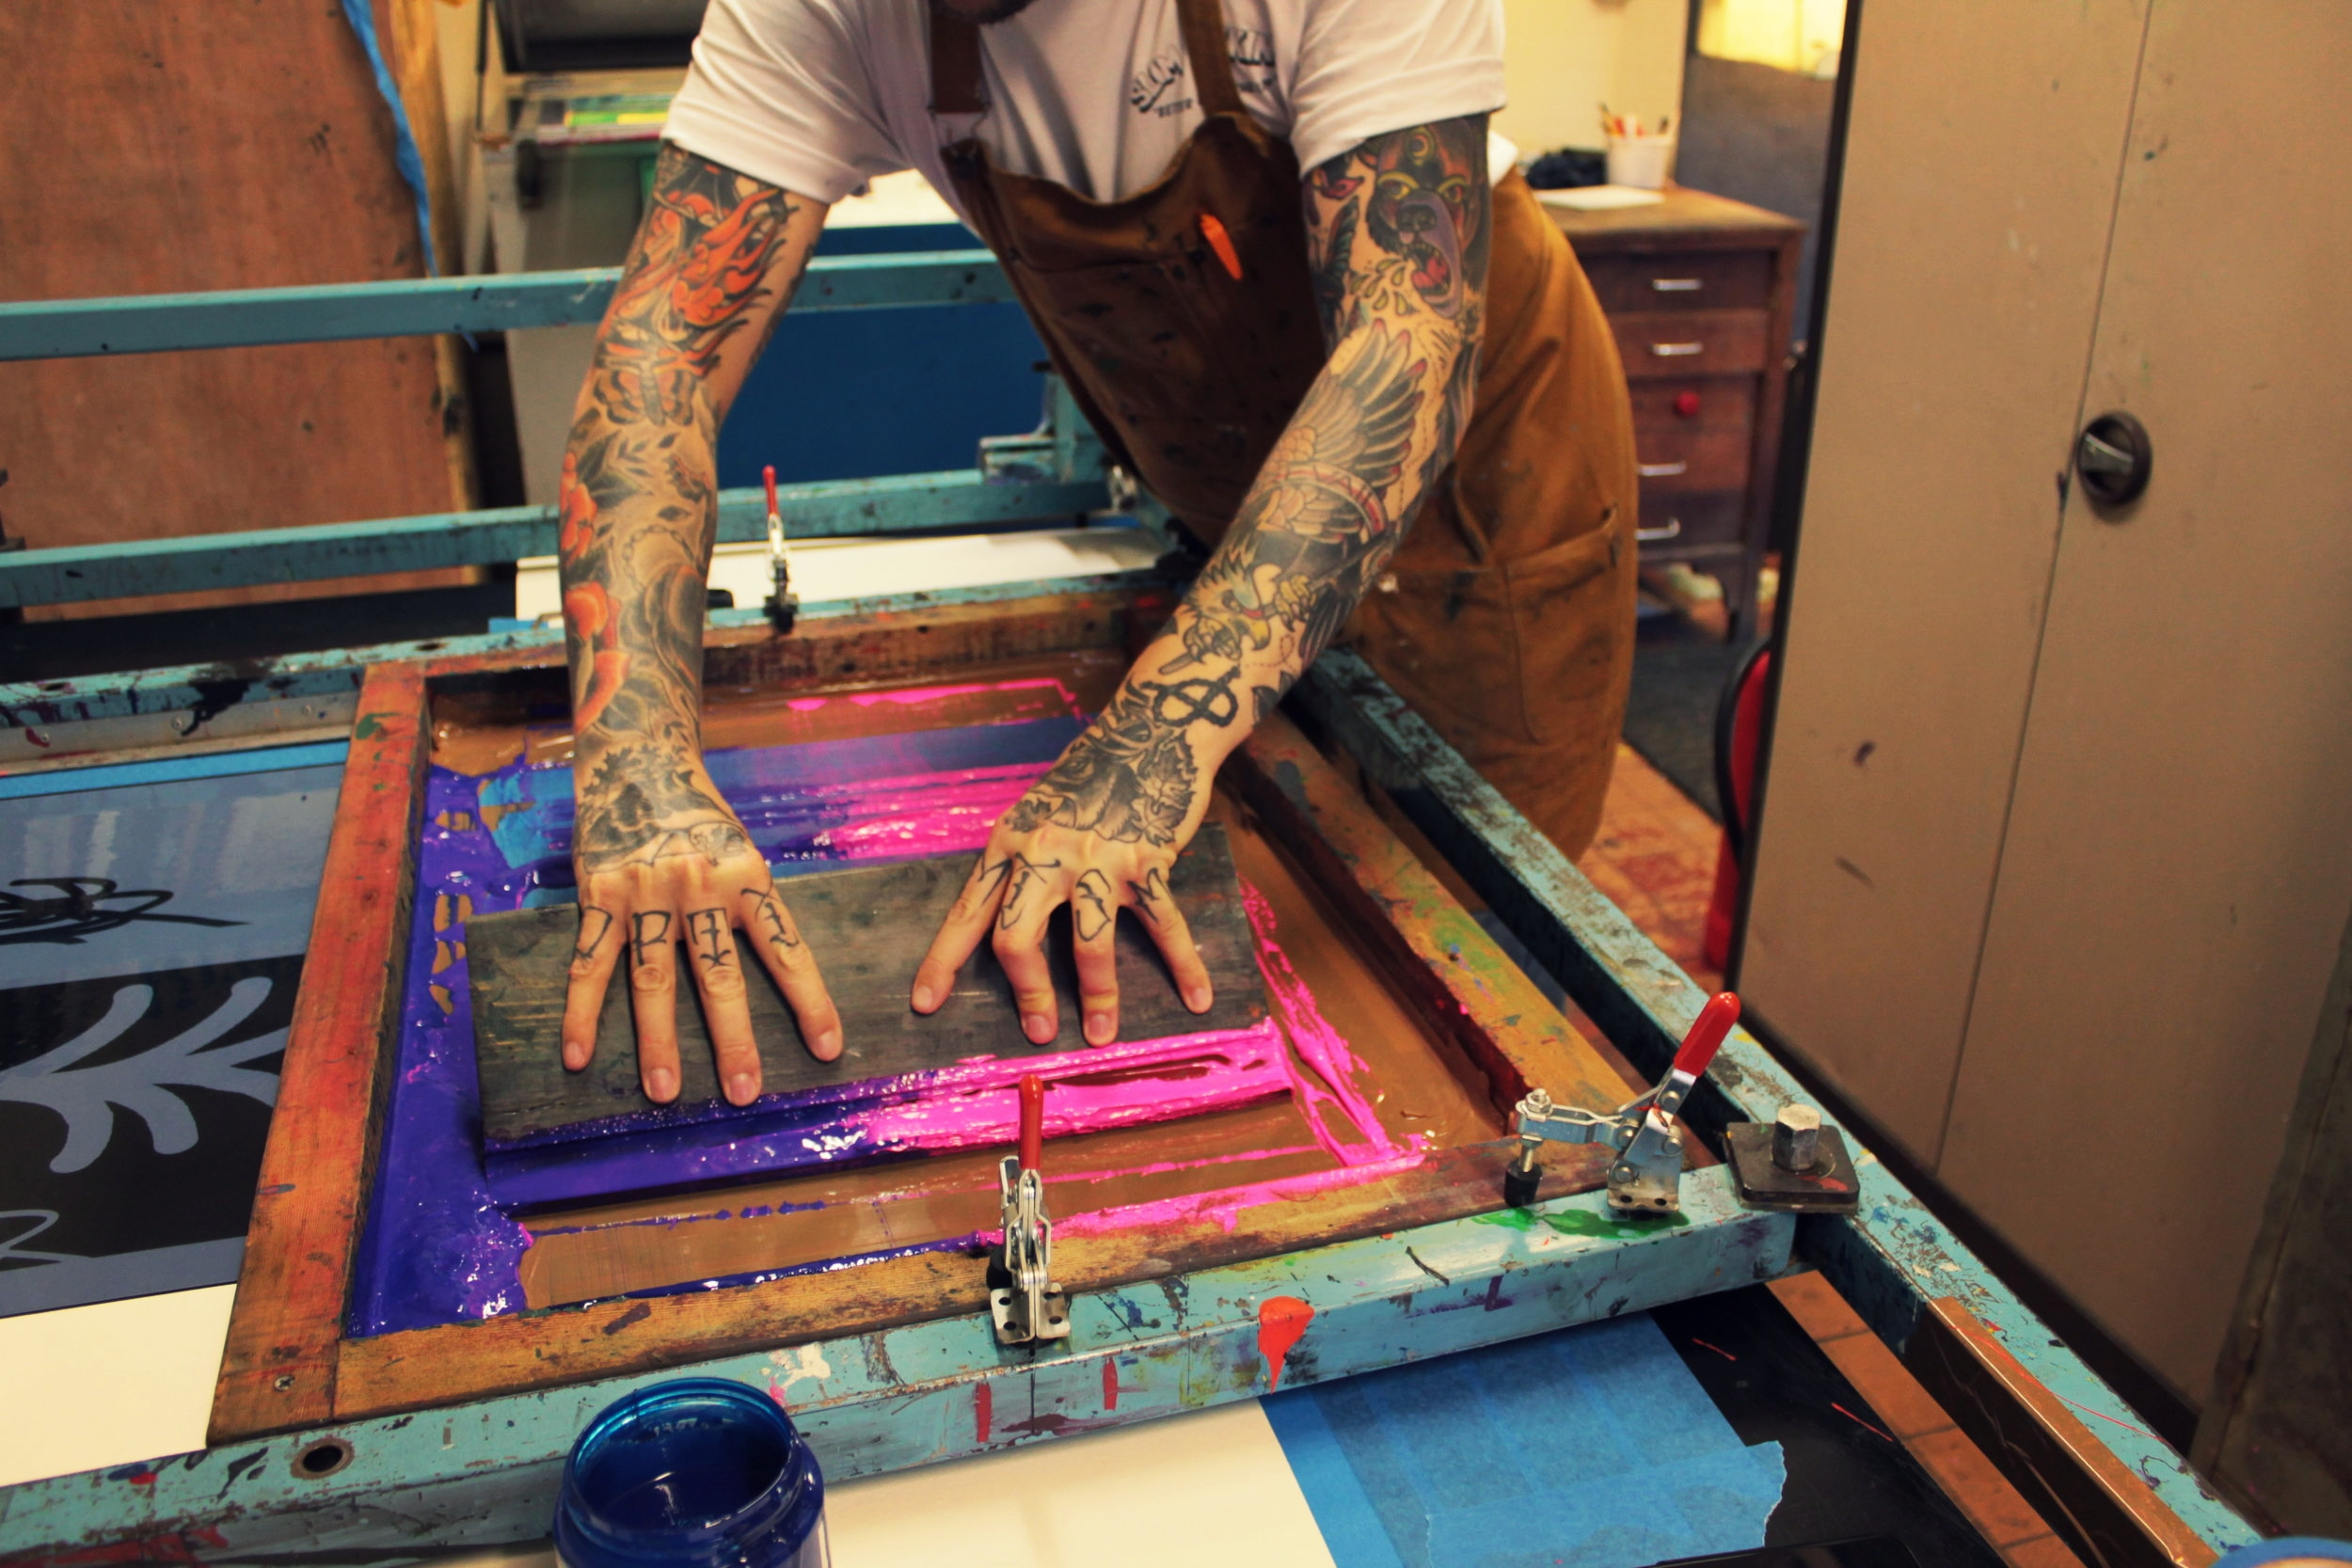 We print for you - Almost anything can be screen printed, and we can offer services to businesses and individuals looking for that personal hand finished, unique product.